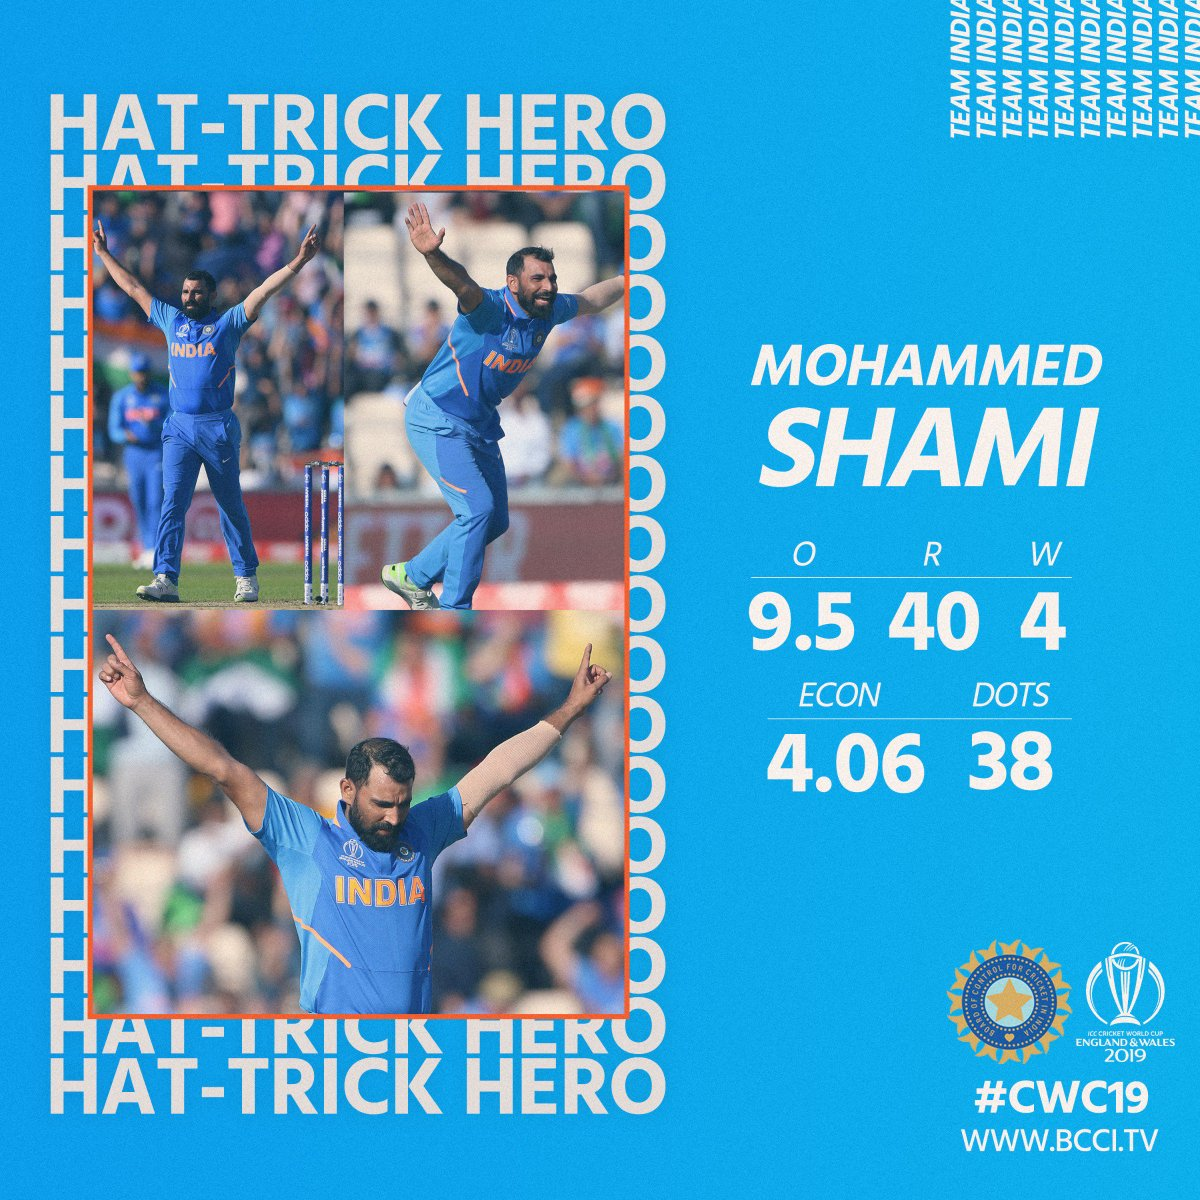 A big shout out for our Hat-trick Hero @MdShami11 - striking timber when it mattered the most - you Champ! #TeamIndia #INDvAFG #CWC19